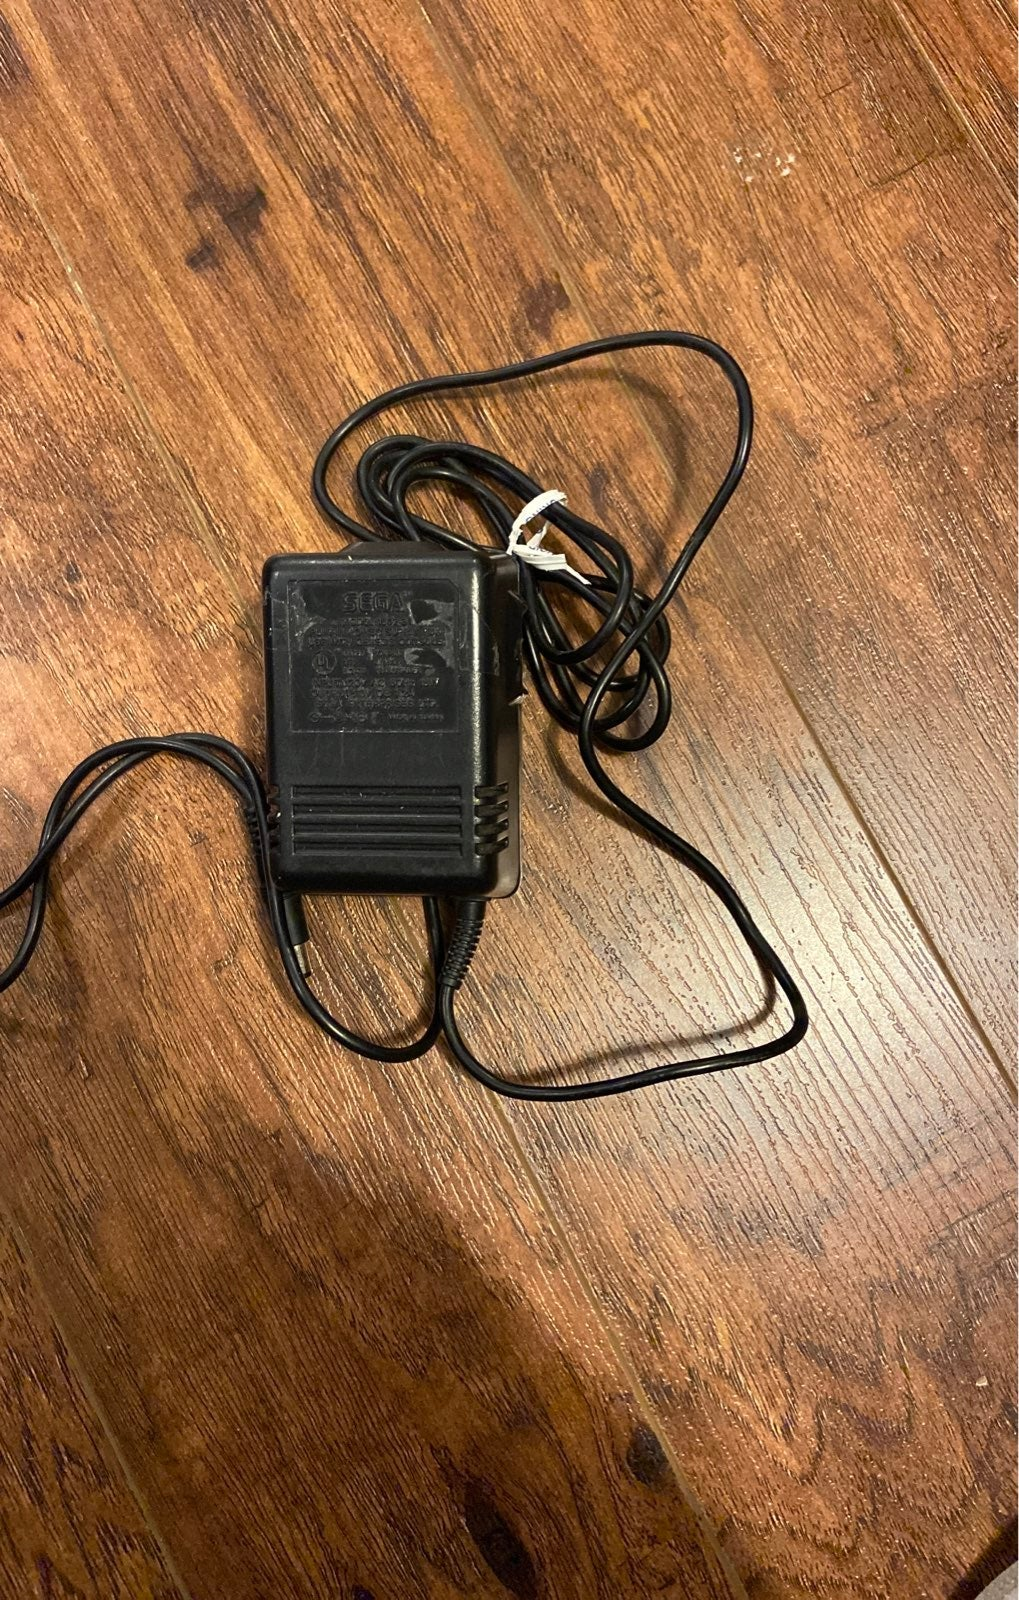 Sega model 1602-3 power supply